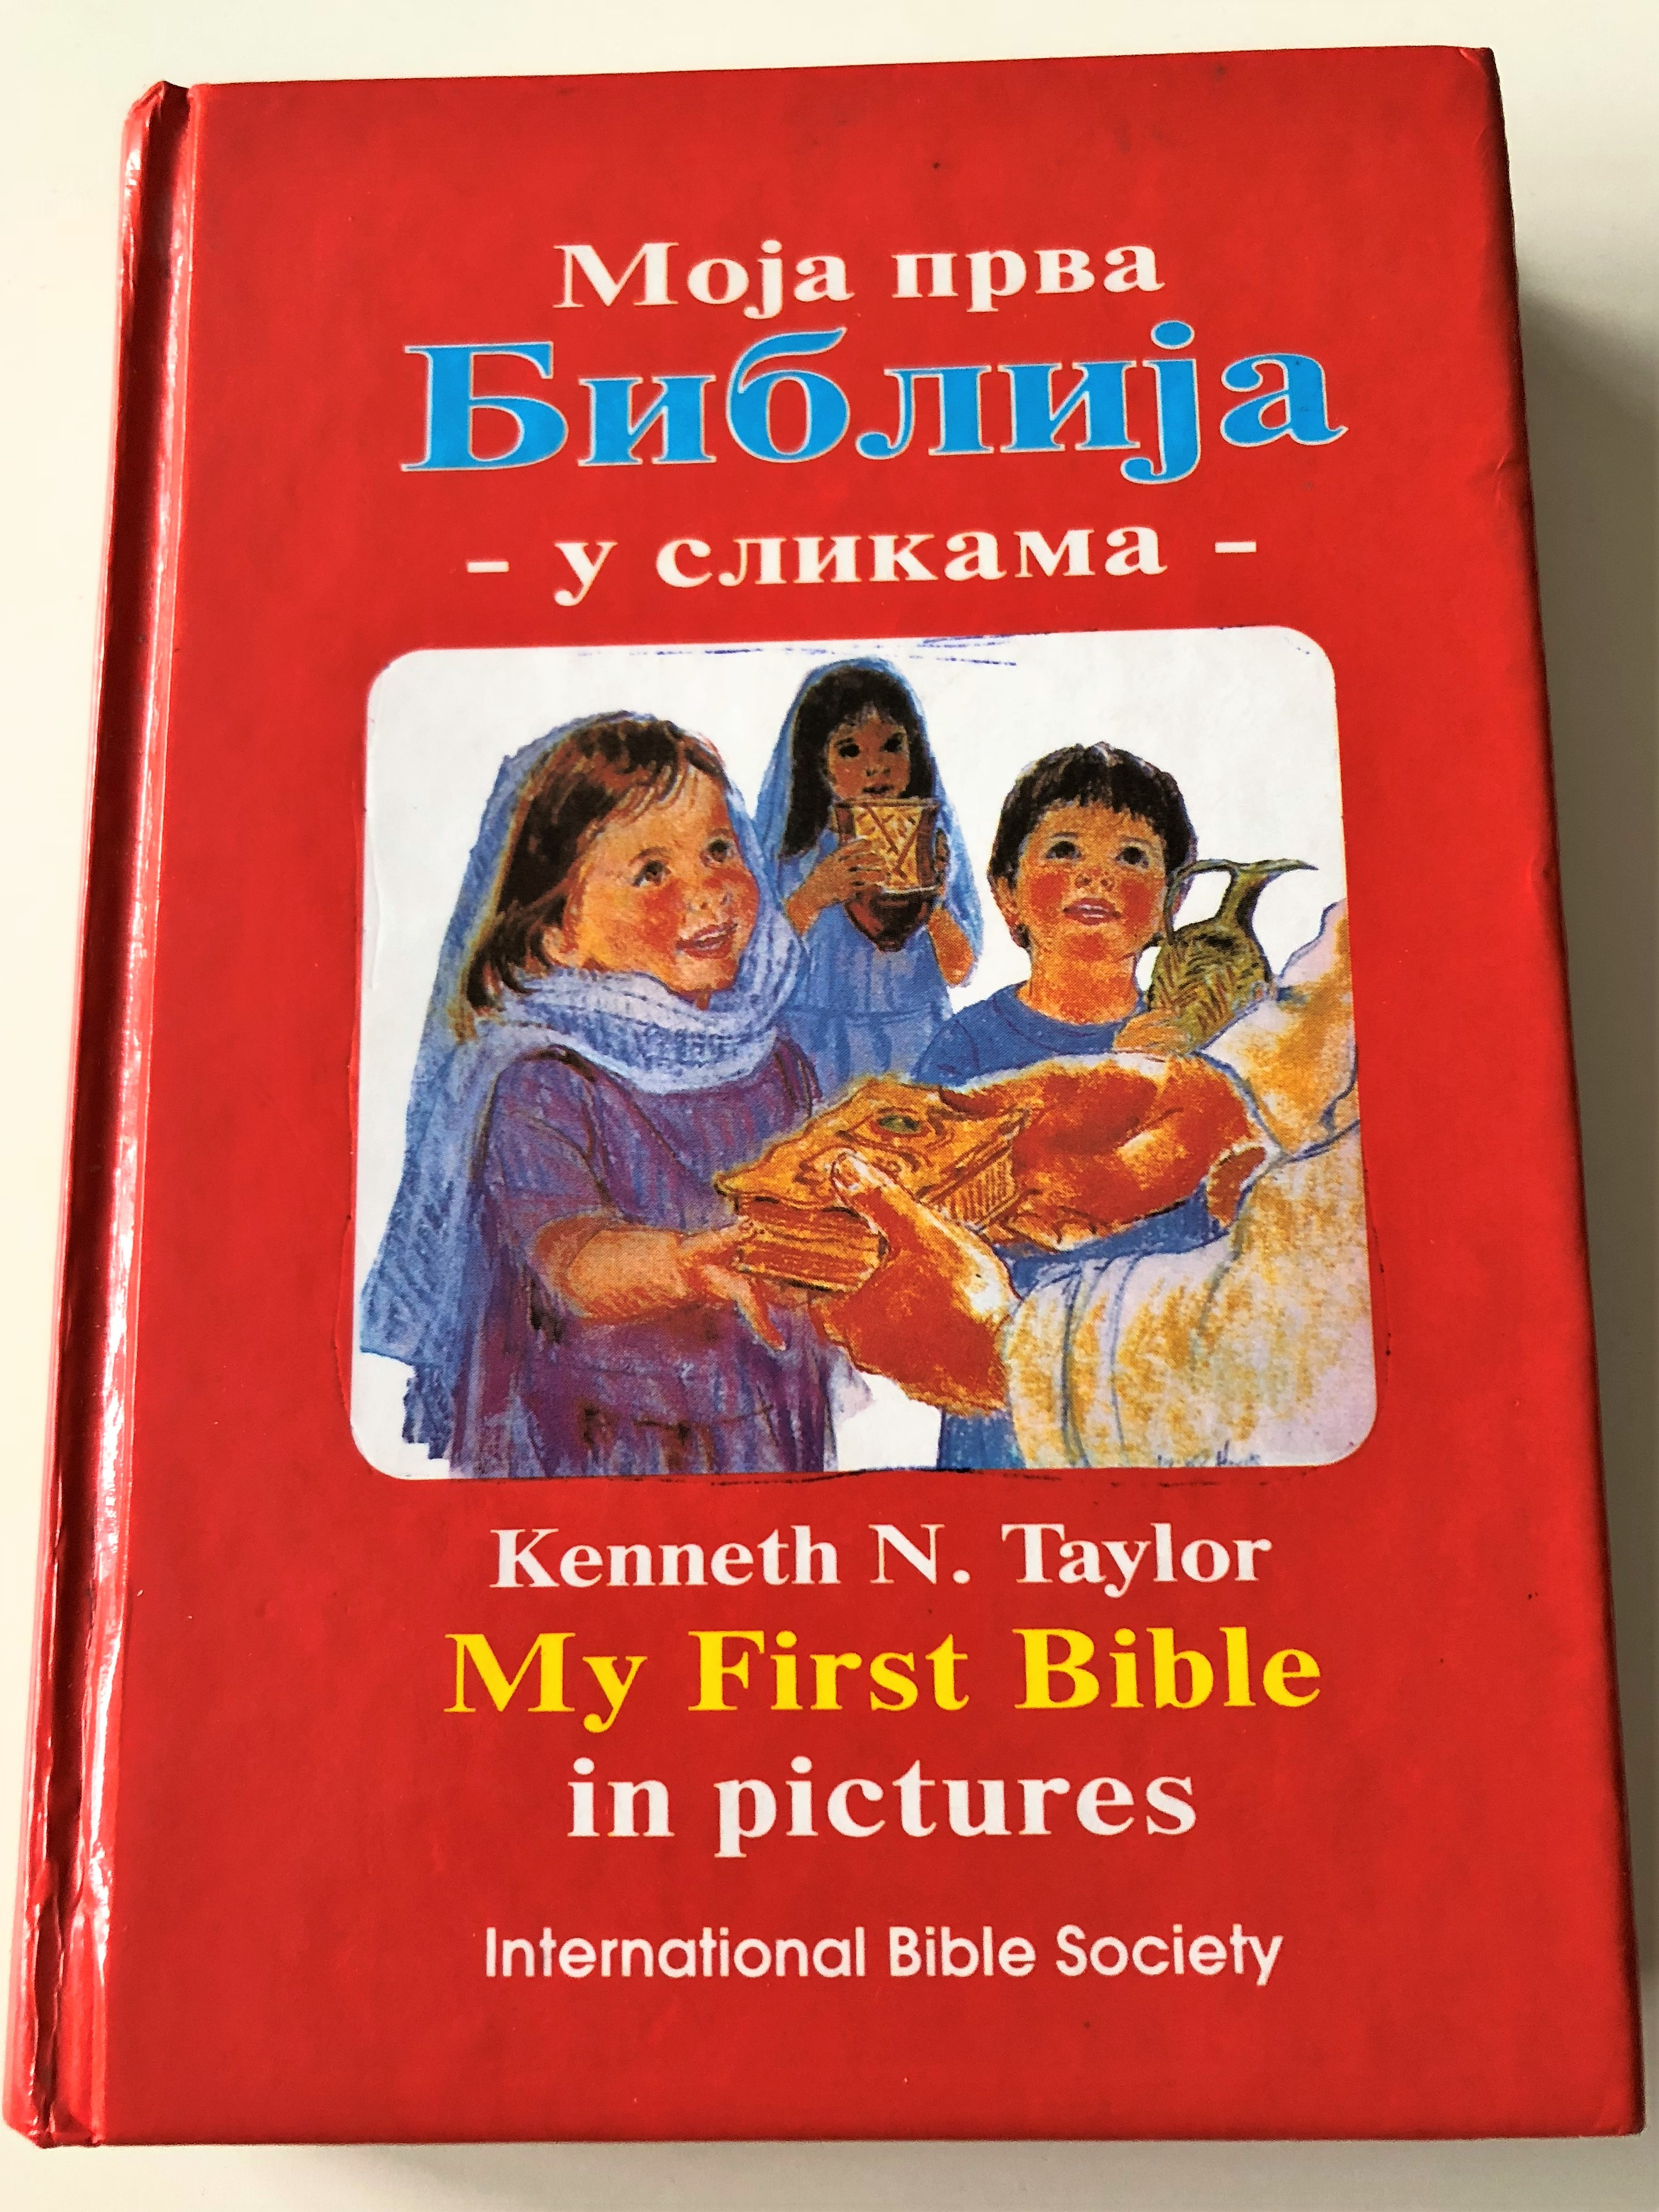 serbian-my-first-bible-in-pictures-1-.jpg